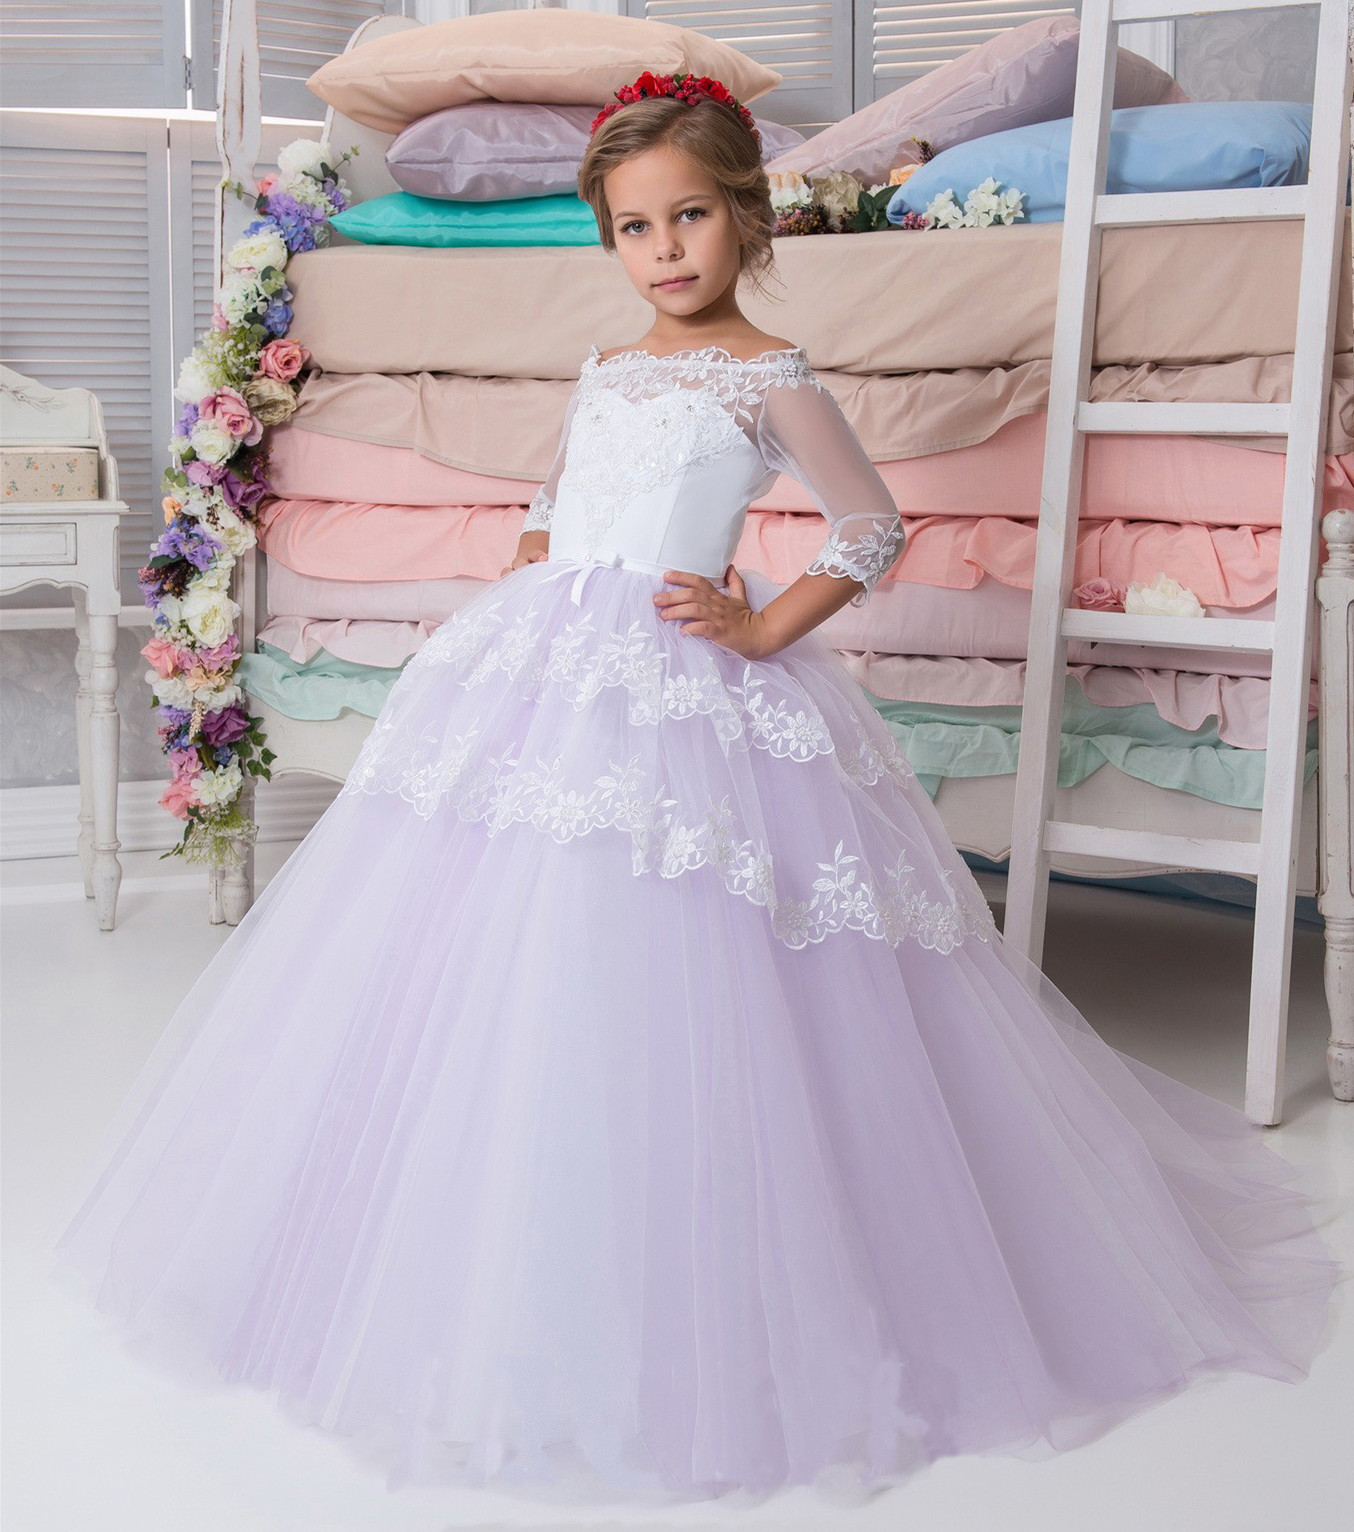 Flower girl dress white purple flower girl dress flower girl flower girl dress white purple flower girl dress flower girl dresses girls first communion dressgirls wedding party dress on storenvy mightylinksfo